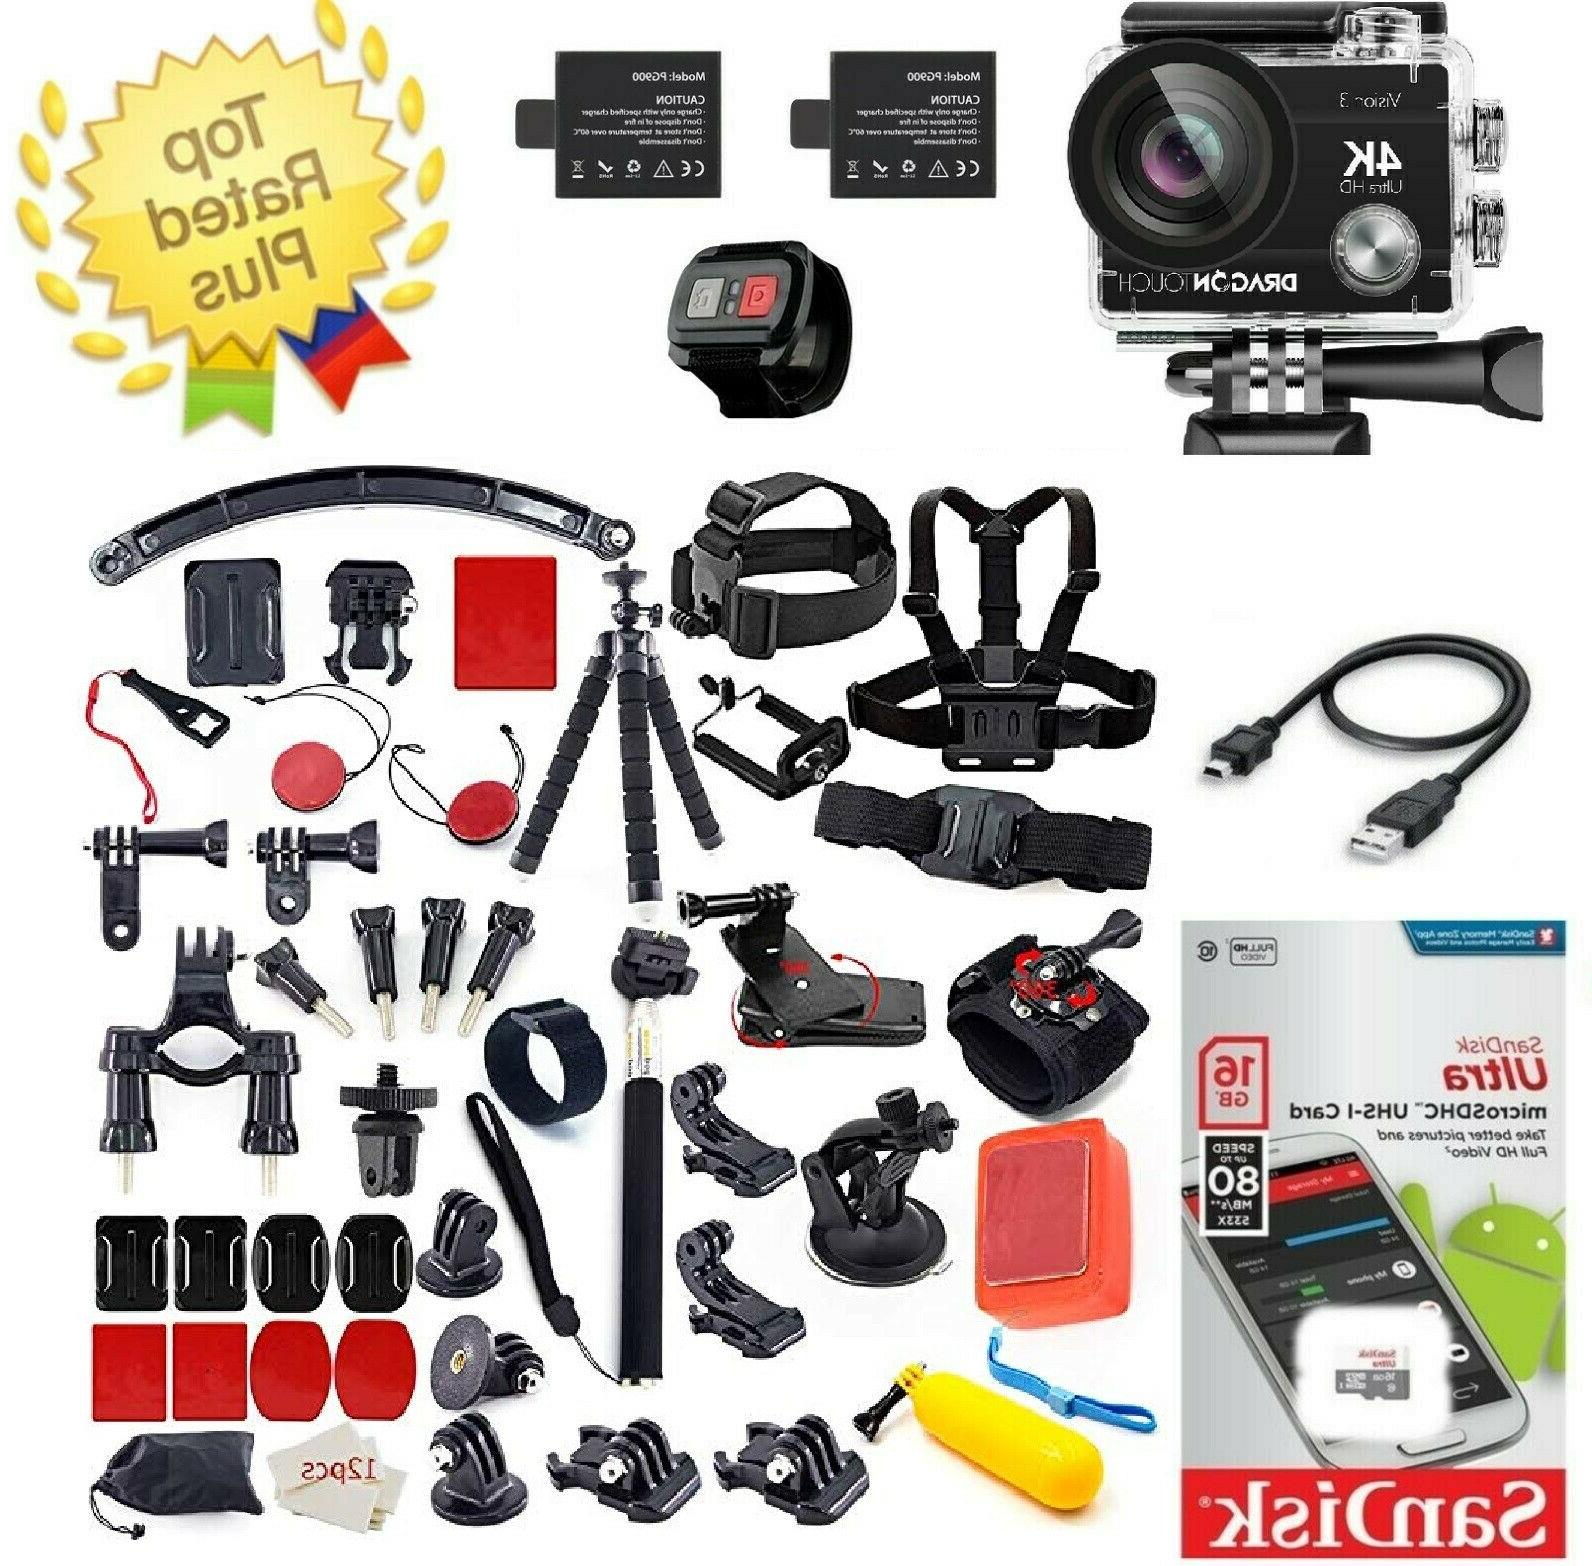 4k waterproof action camera 16mp accessory kit